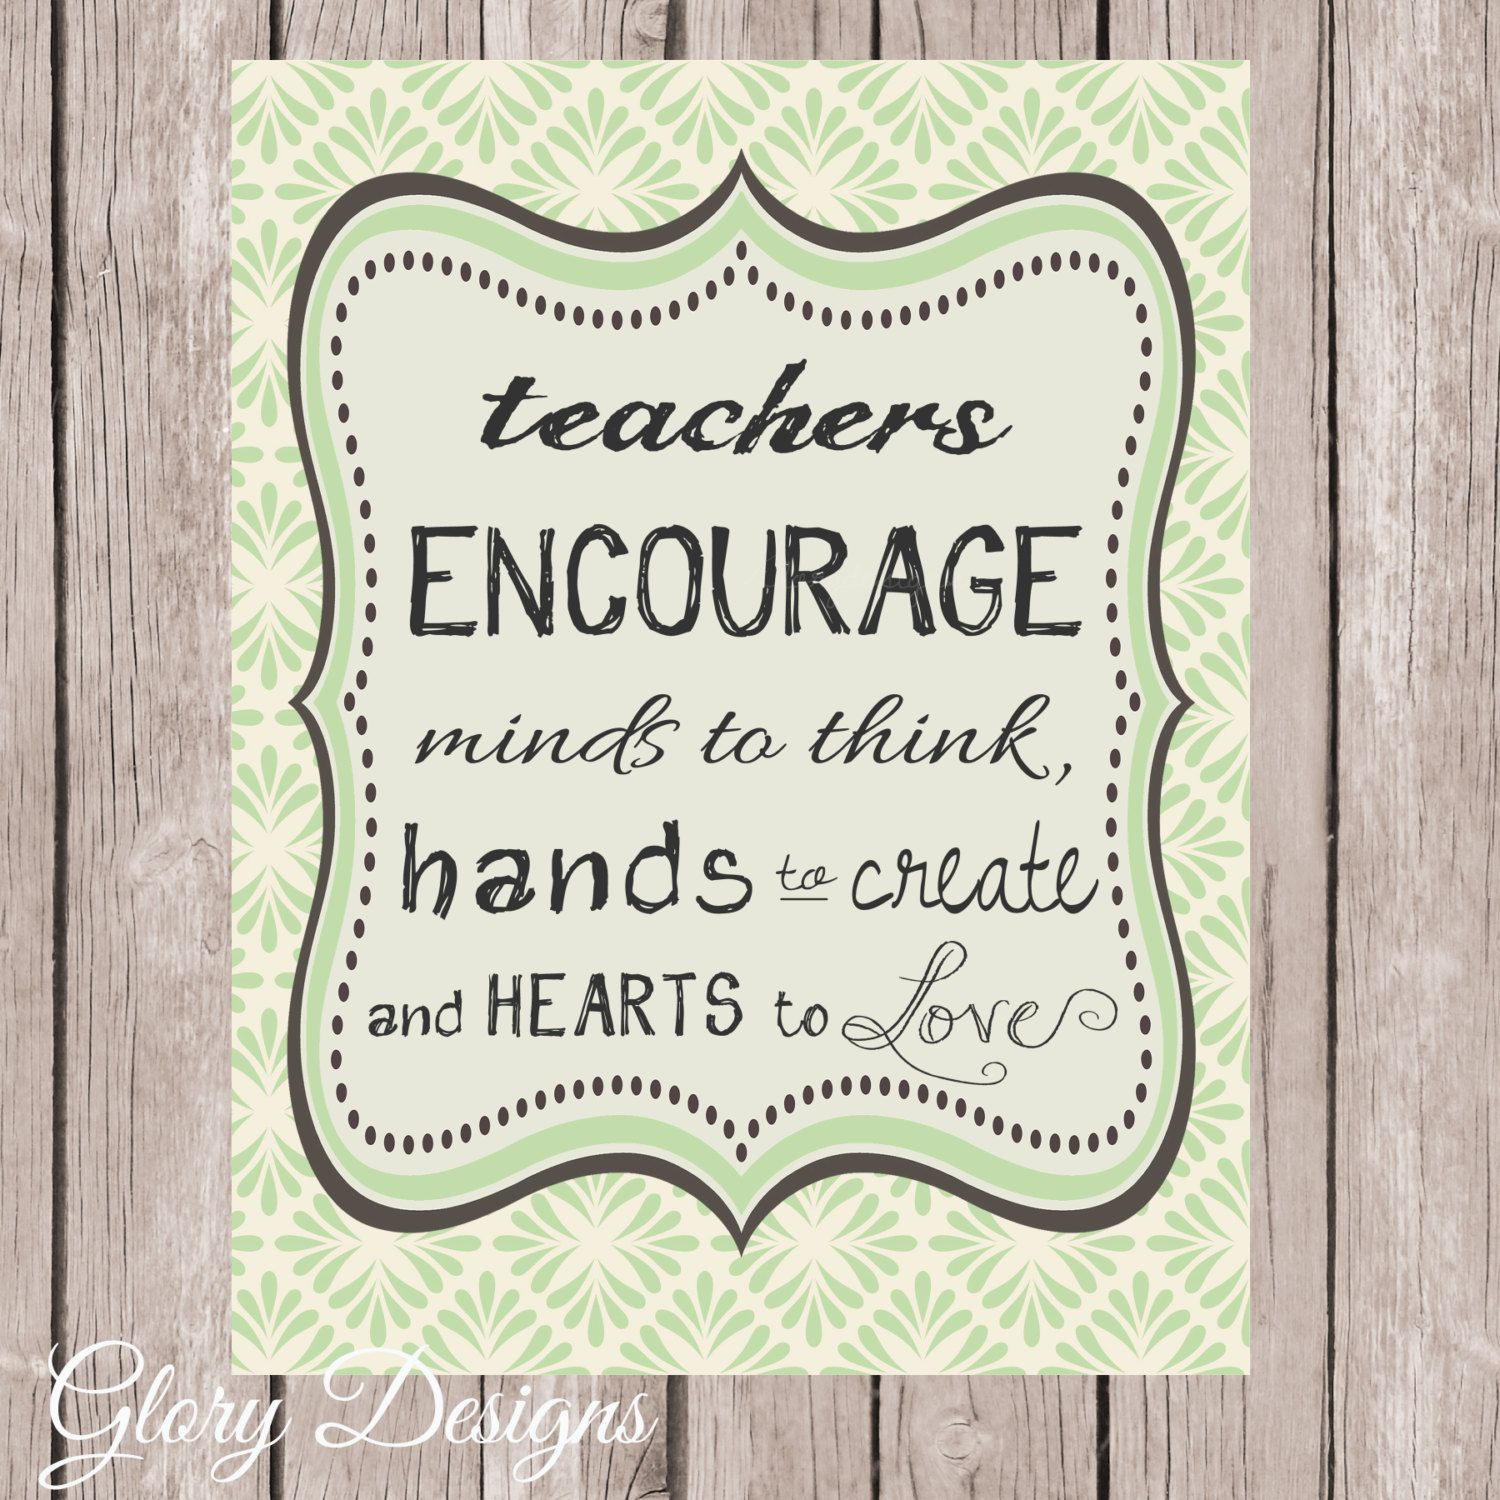 image result for christian quotes from teachers to students